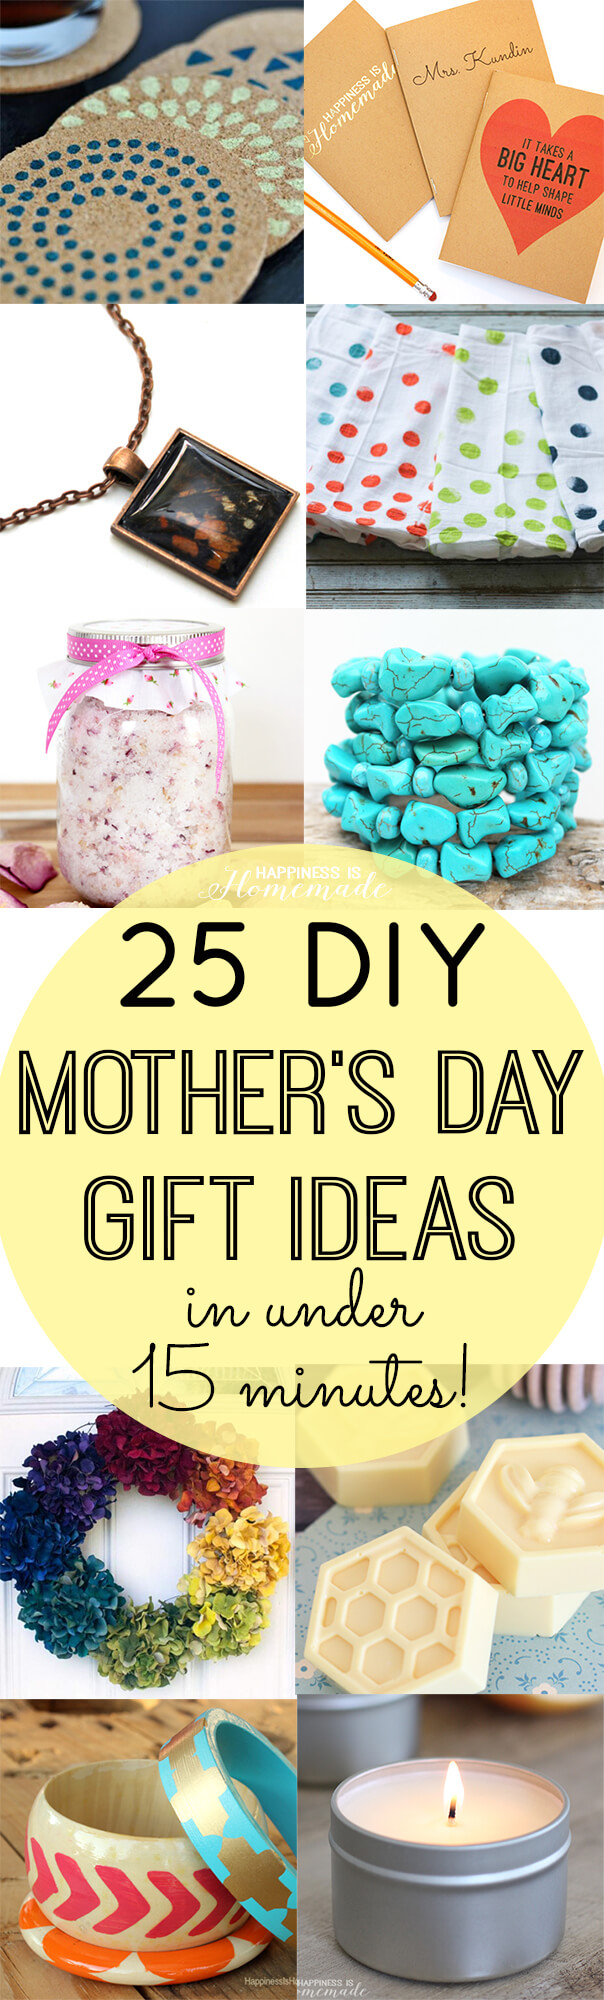 25 DIY Motheru0027s Day Gifts in Under